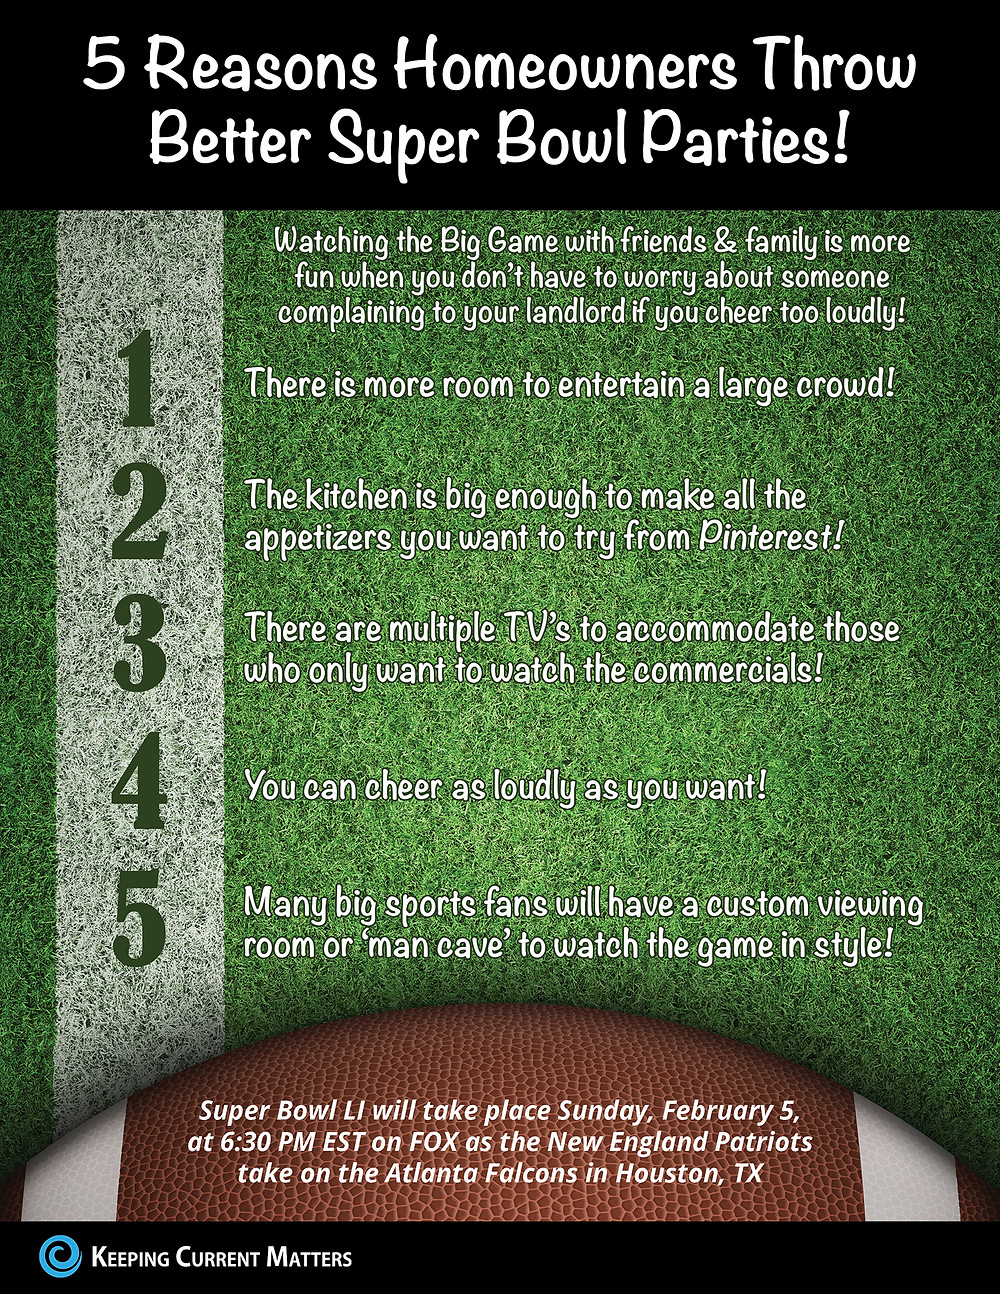 5 Reasons Homeowners Throw Better Super Bowl Parties! [INFOGRAPHIC] | Keeping Current Matters